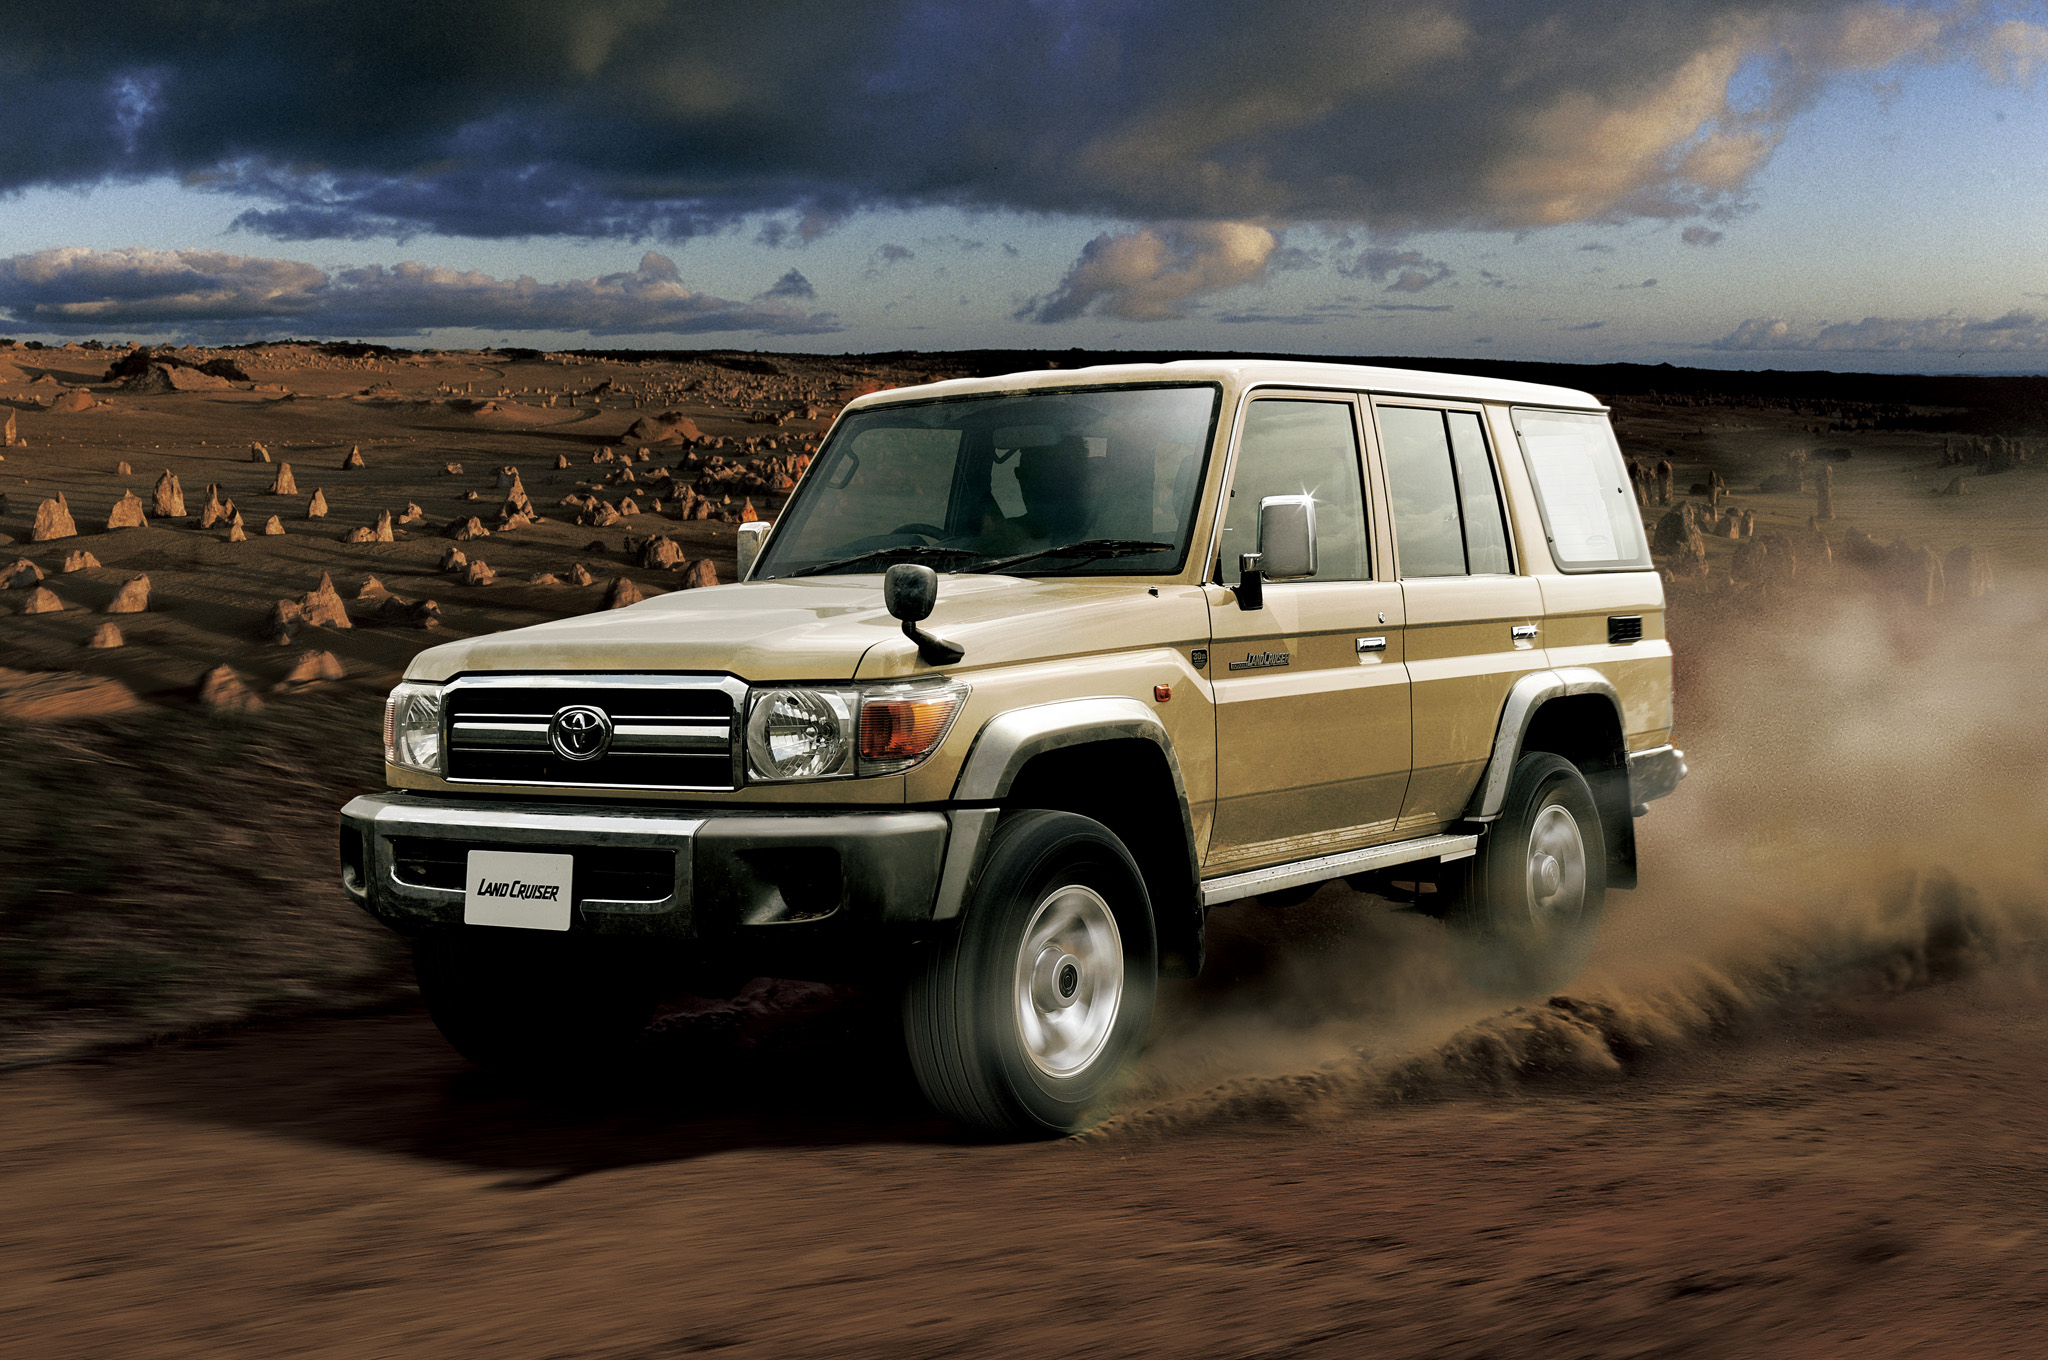 Not For US Consumption: Top 10 Coolest Cars We Can't Buy